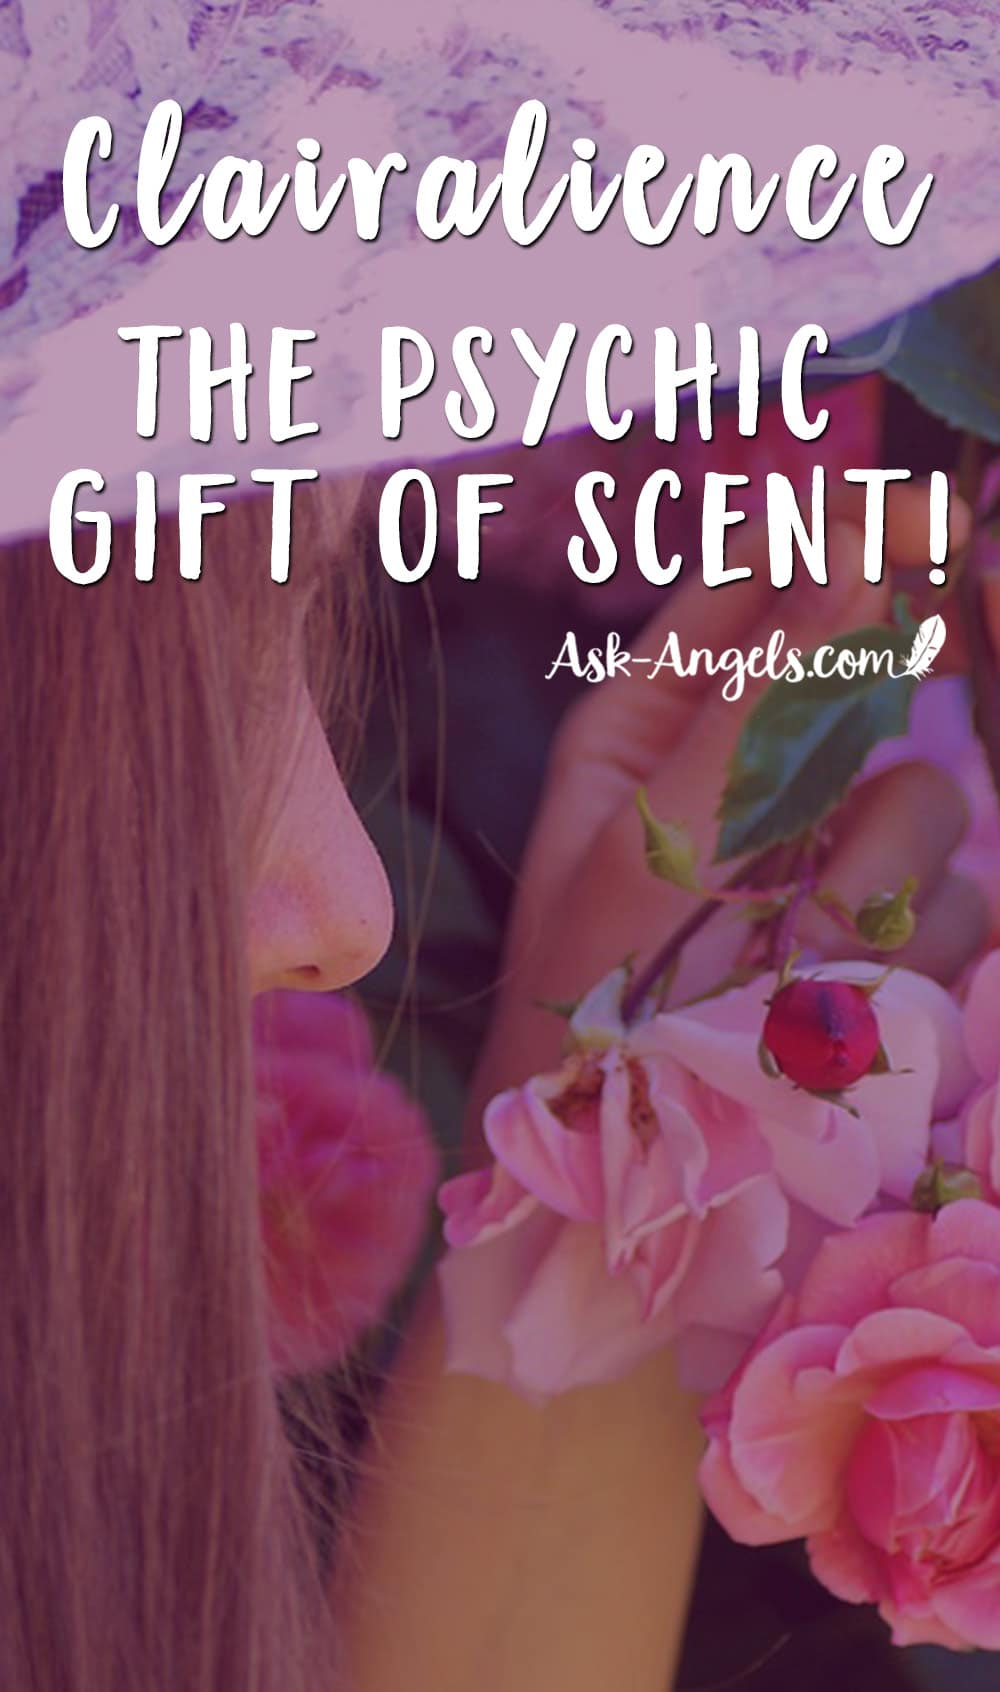 Clairalience - The Psychic Gift of Scent